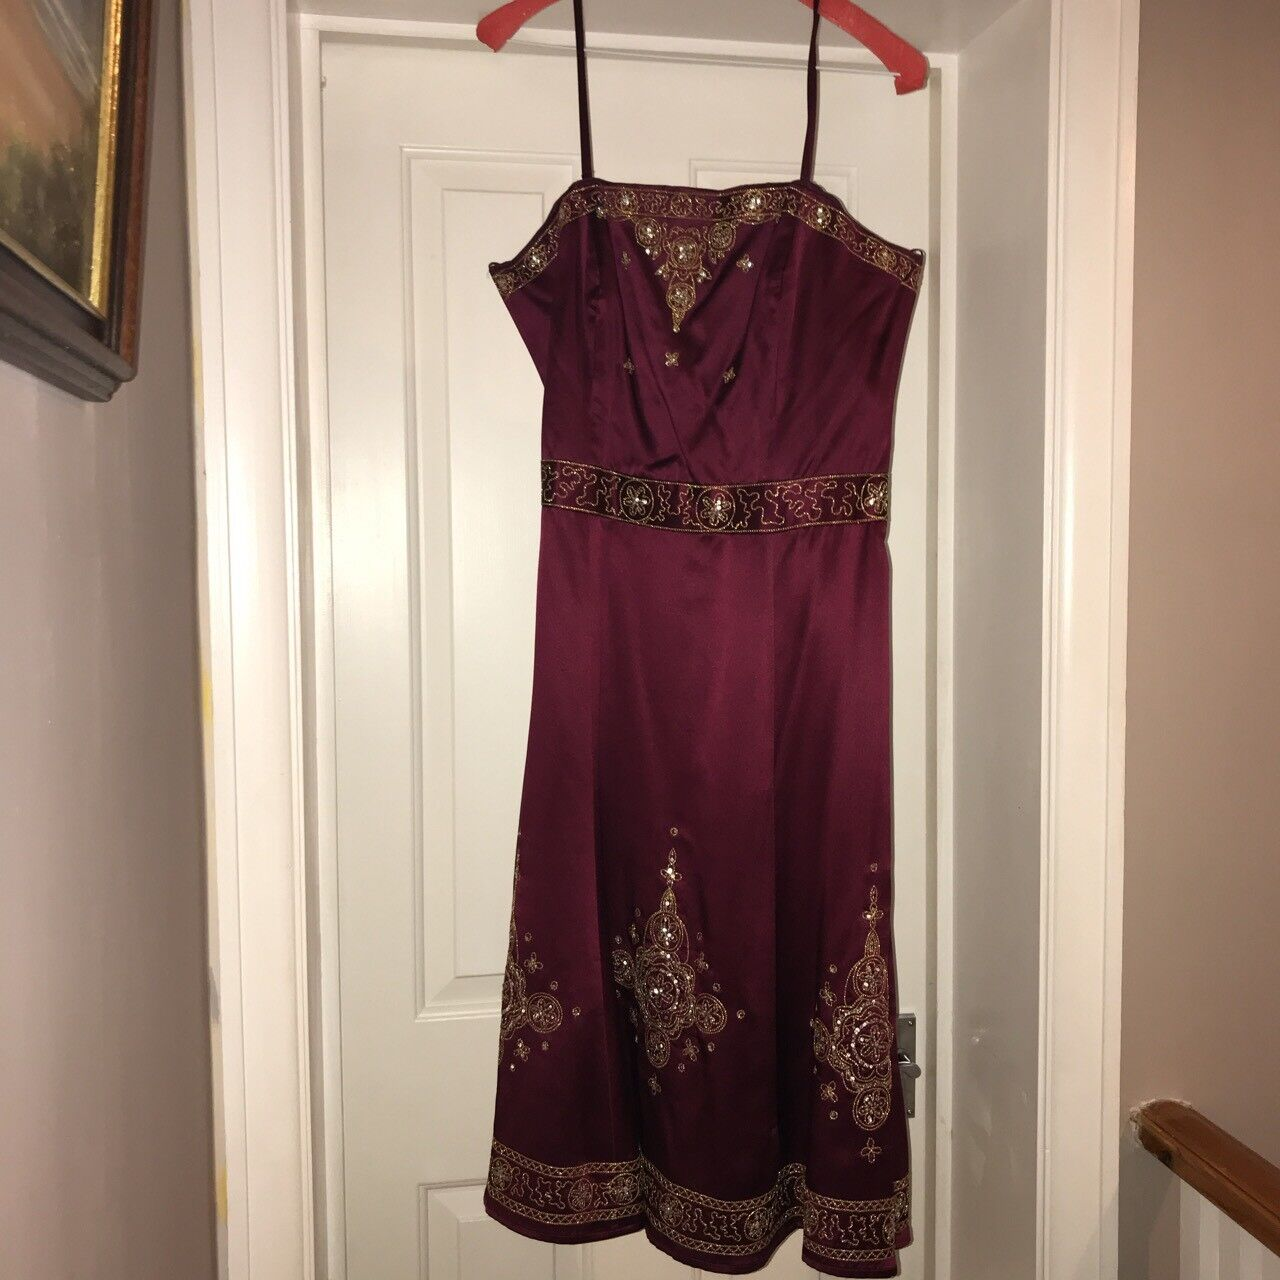 Debenhams dark Red Purple 100% silk dress dress dress (with gold embroidery), size 14 484108